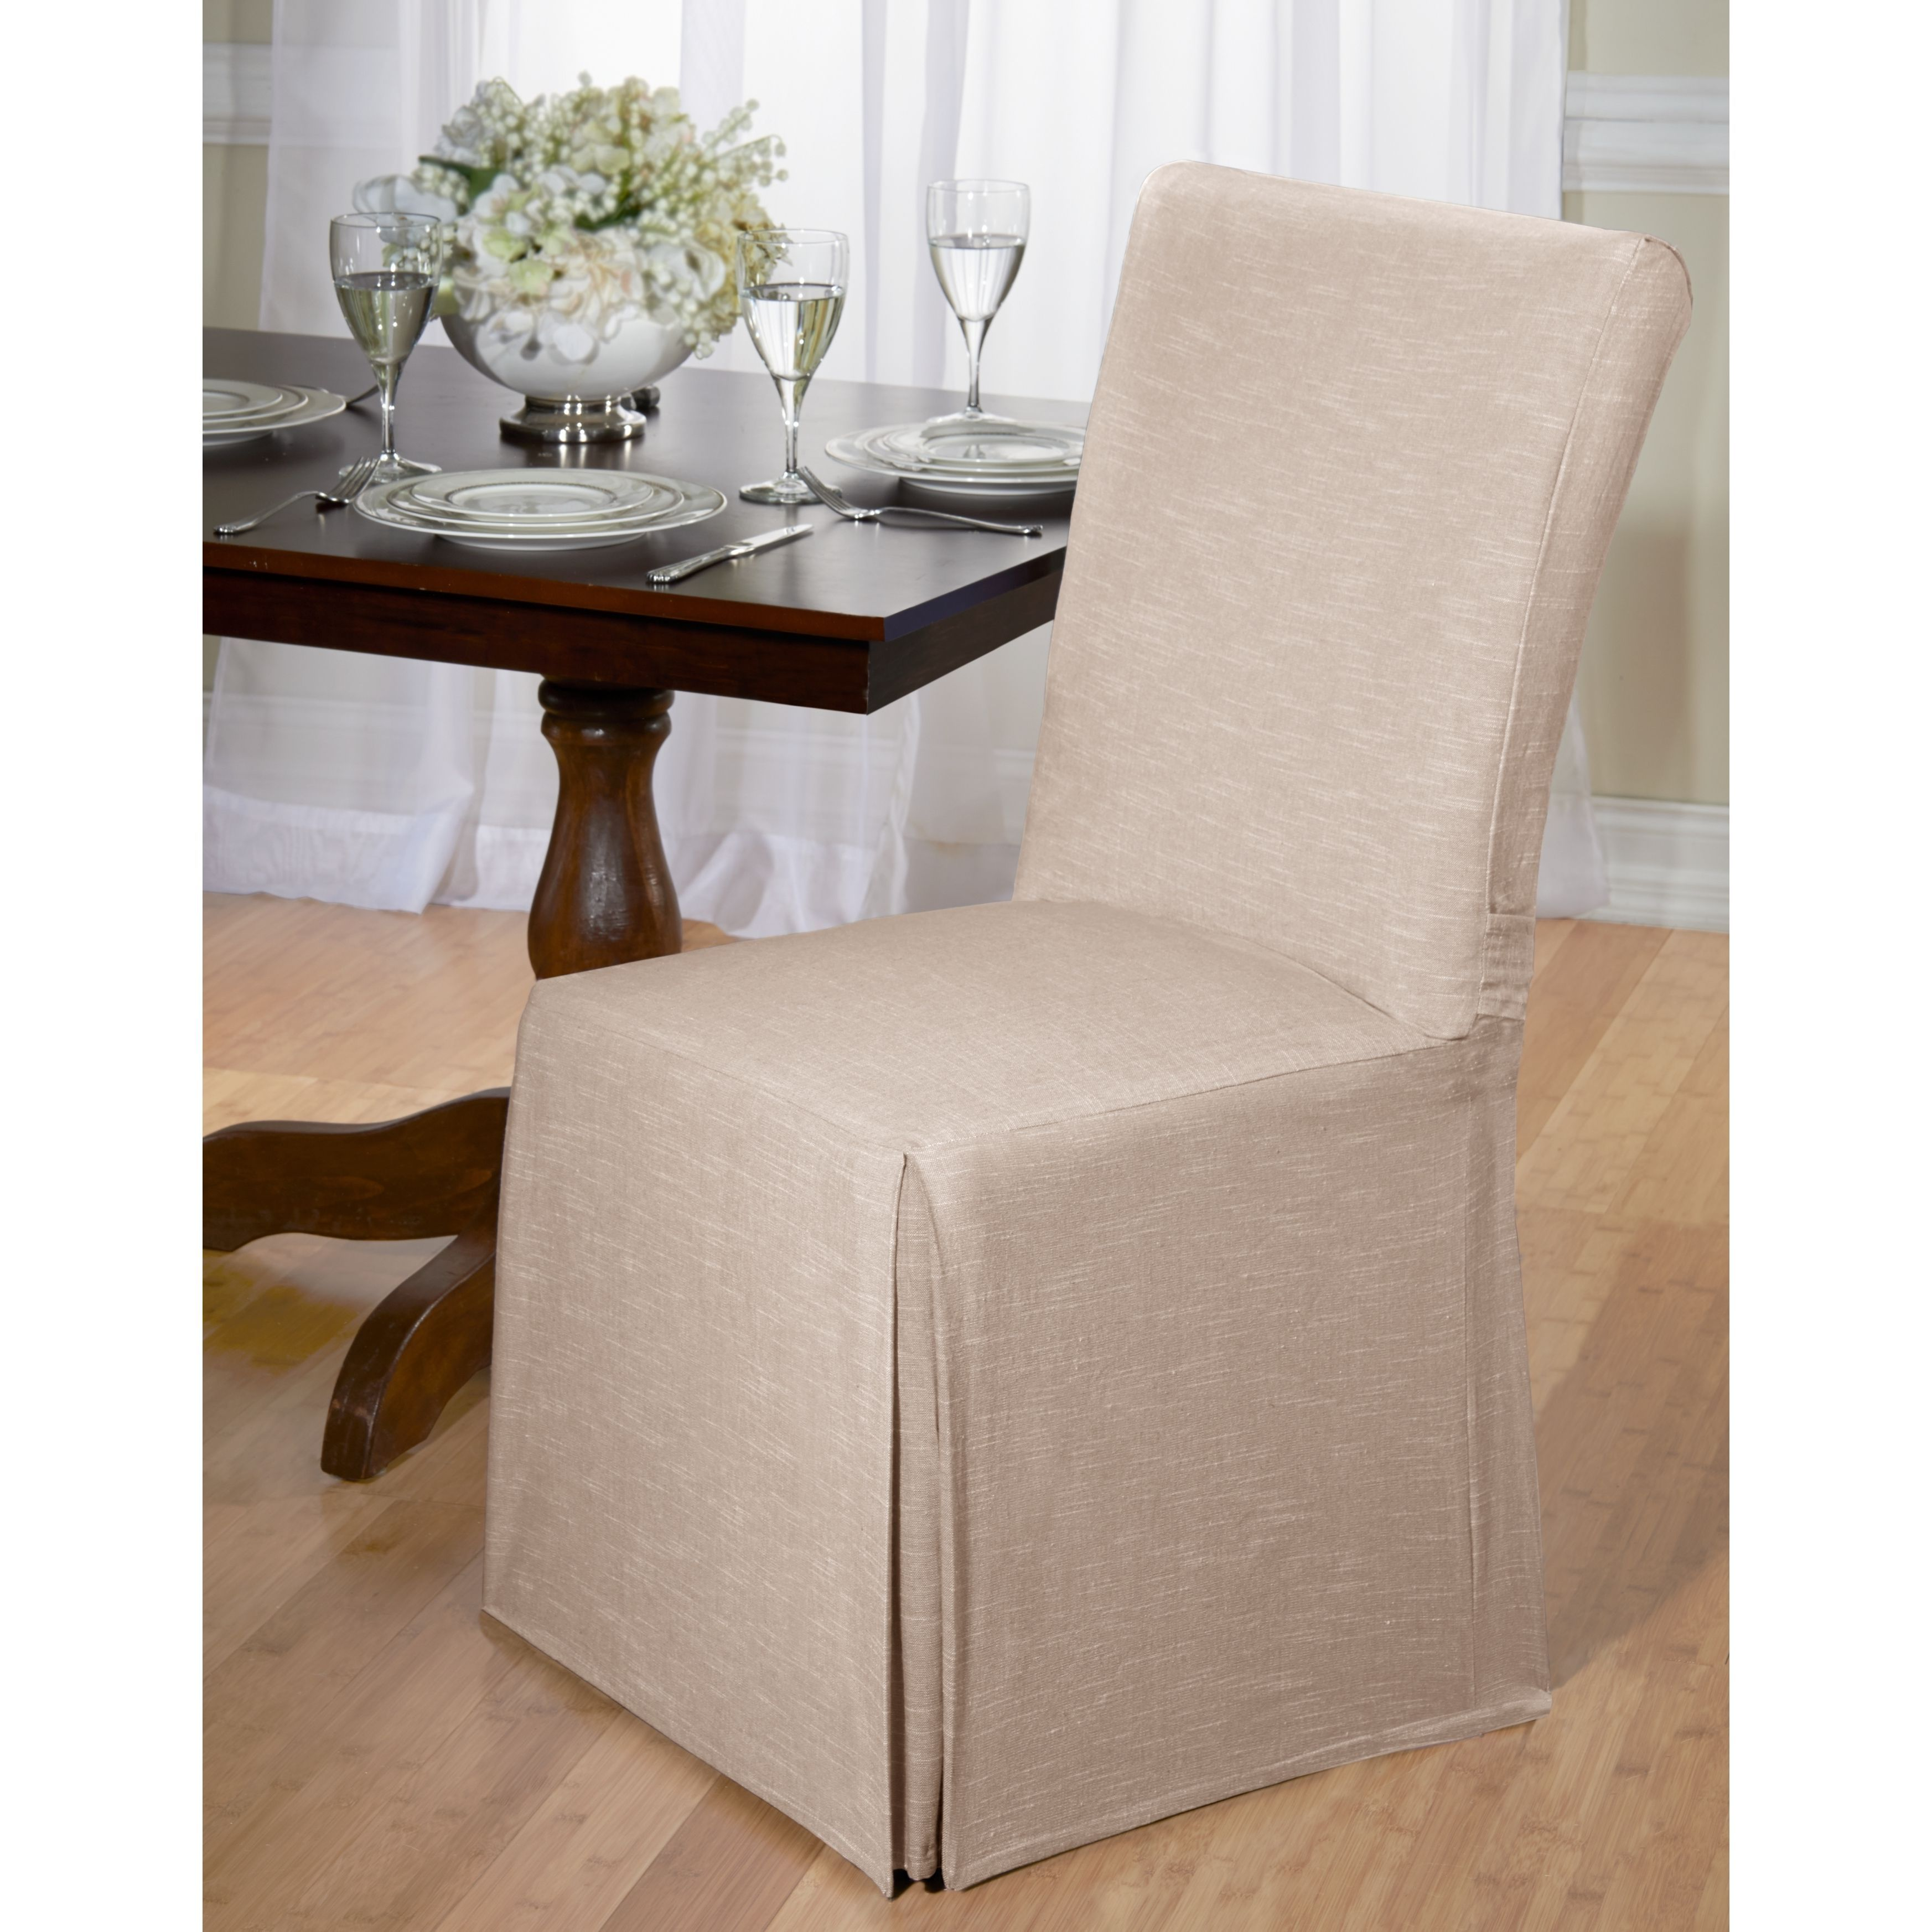 Instantly Add Flair And Style To Your Kitchen Or Dining Room With These Crisp Chair Covers Easy Care Machine Washable 100 Percent Cotton